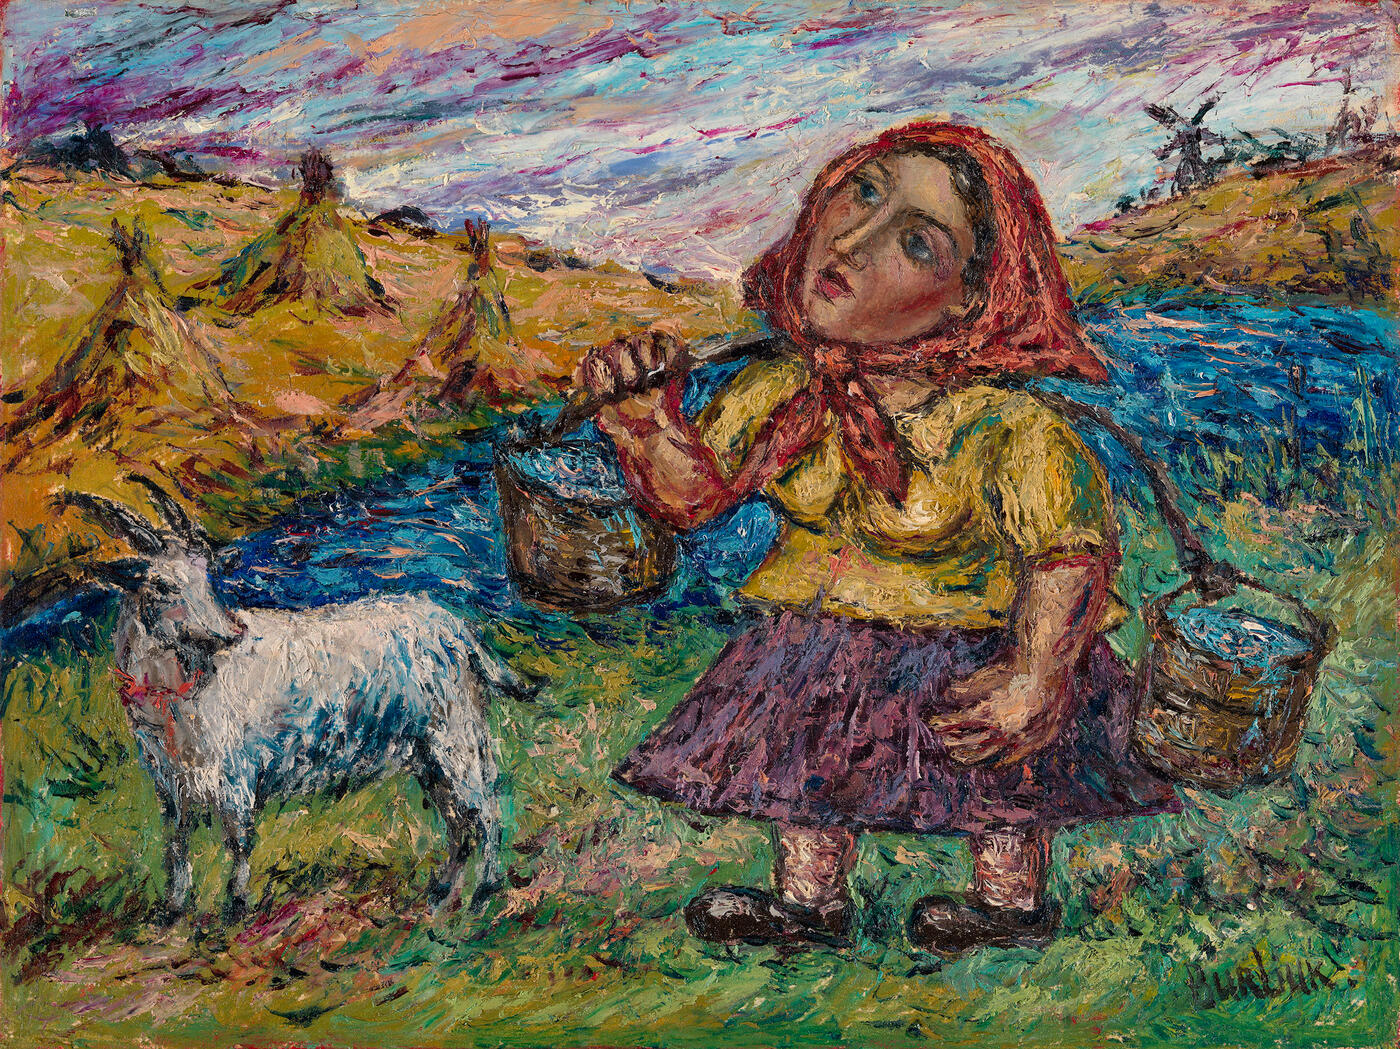 Woman with a Goat